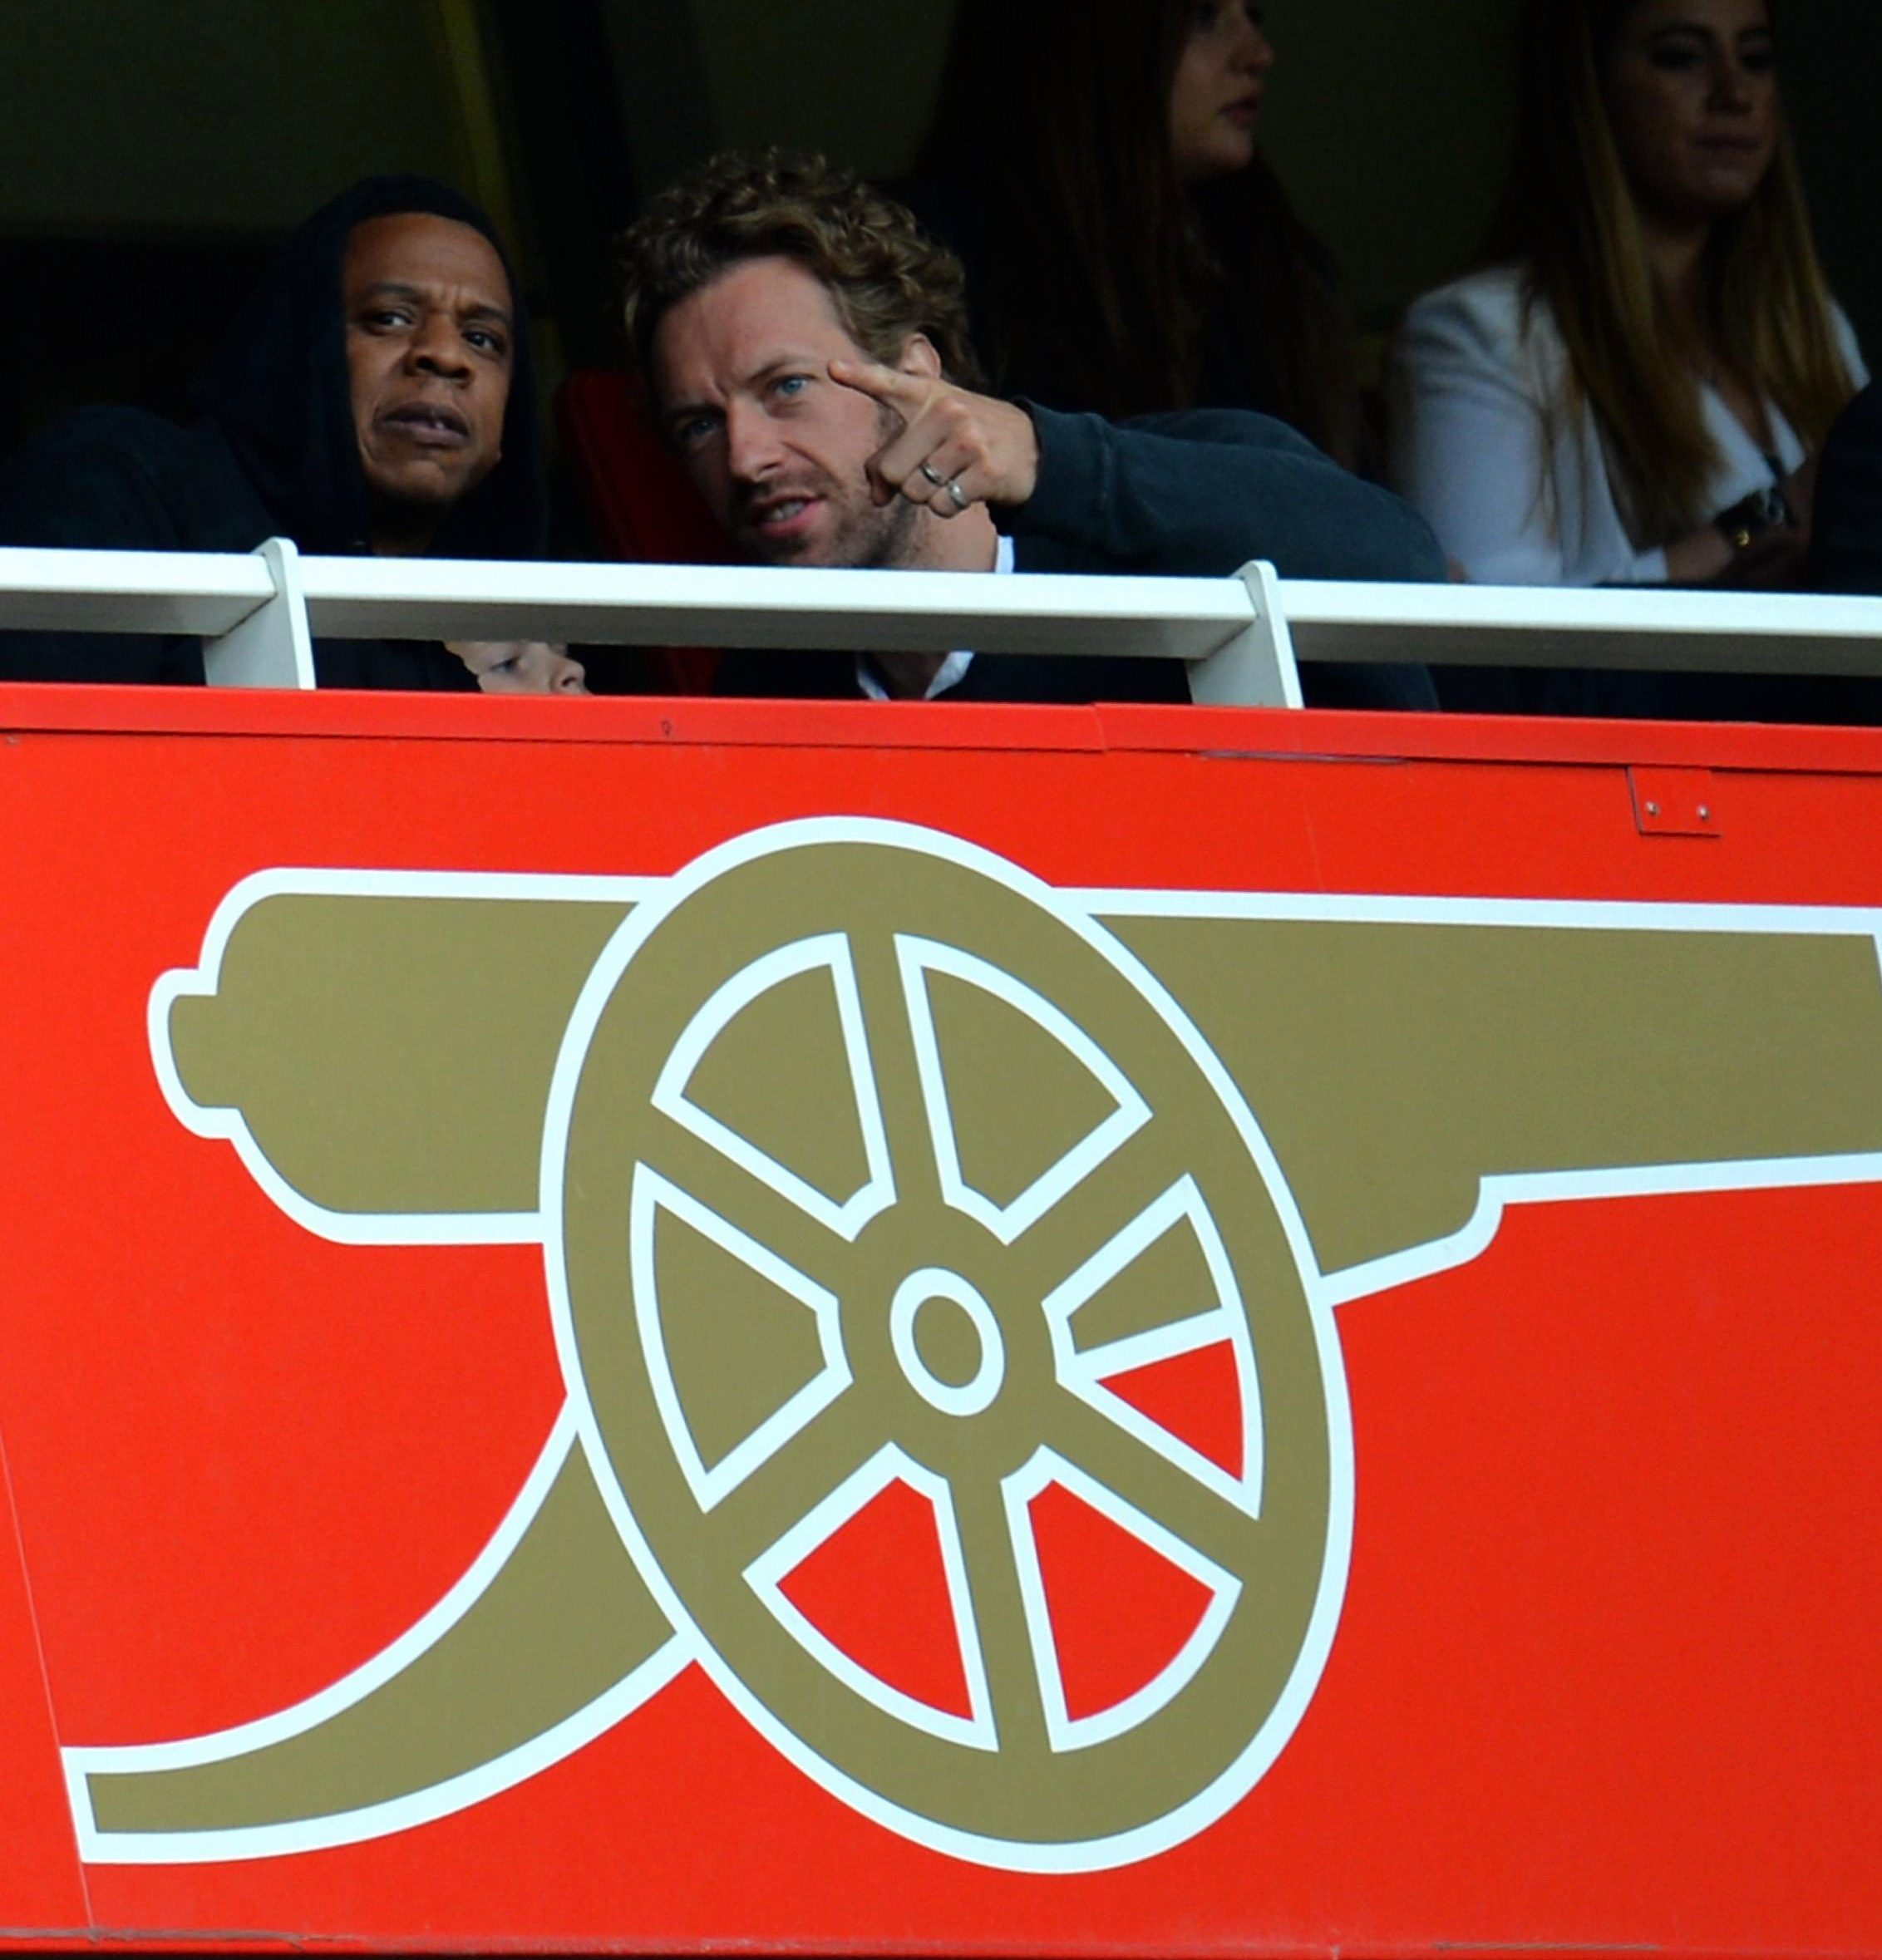 Arsenal have signed a £1m deal with Jay-Z-owned streaming service Tidal